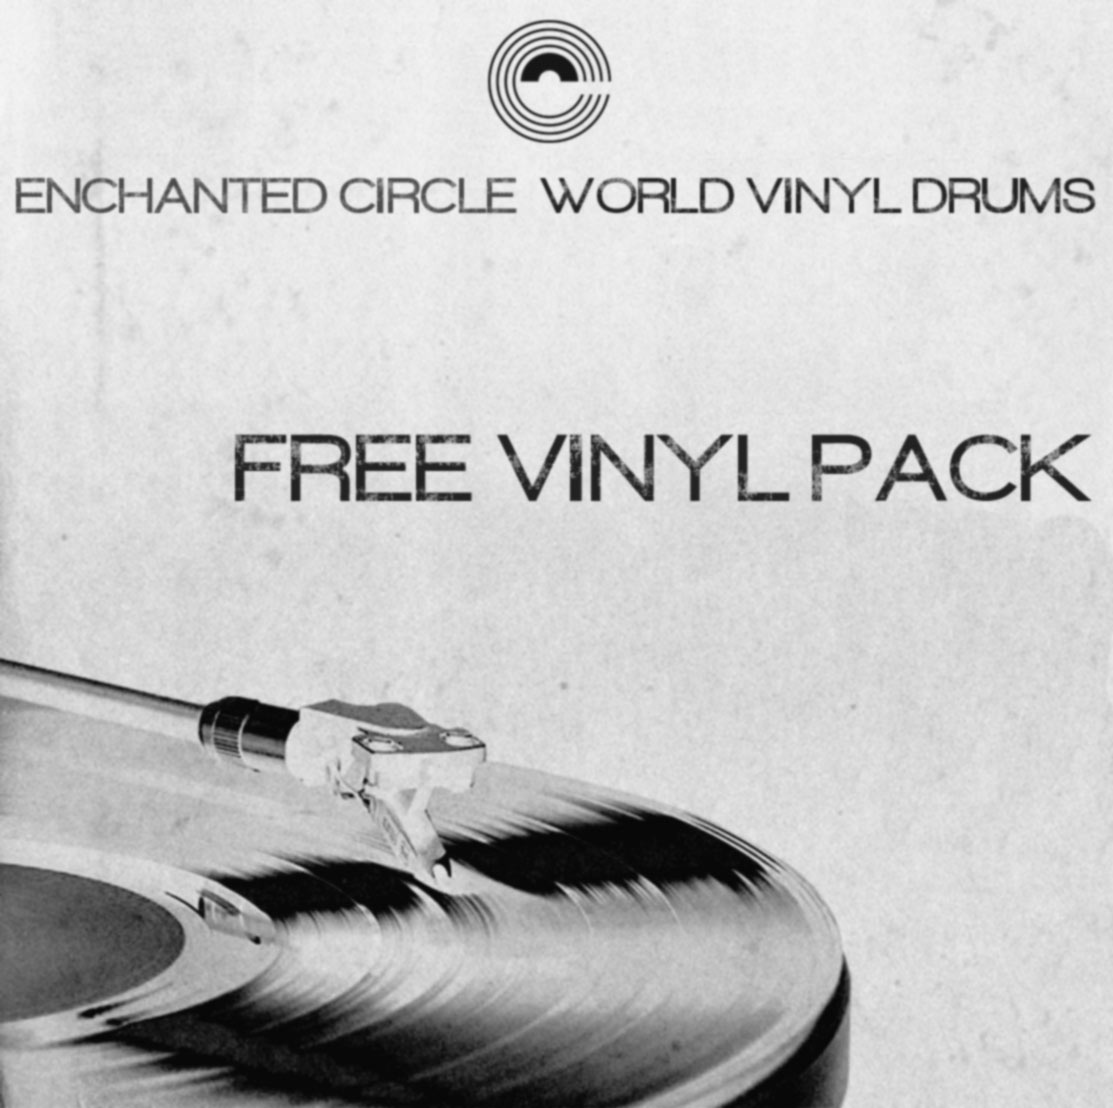 World Ethnic Vinyl Drum Free Samples